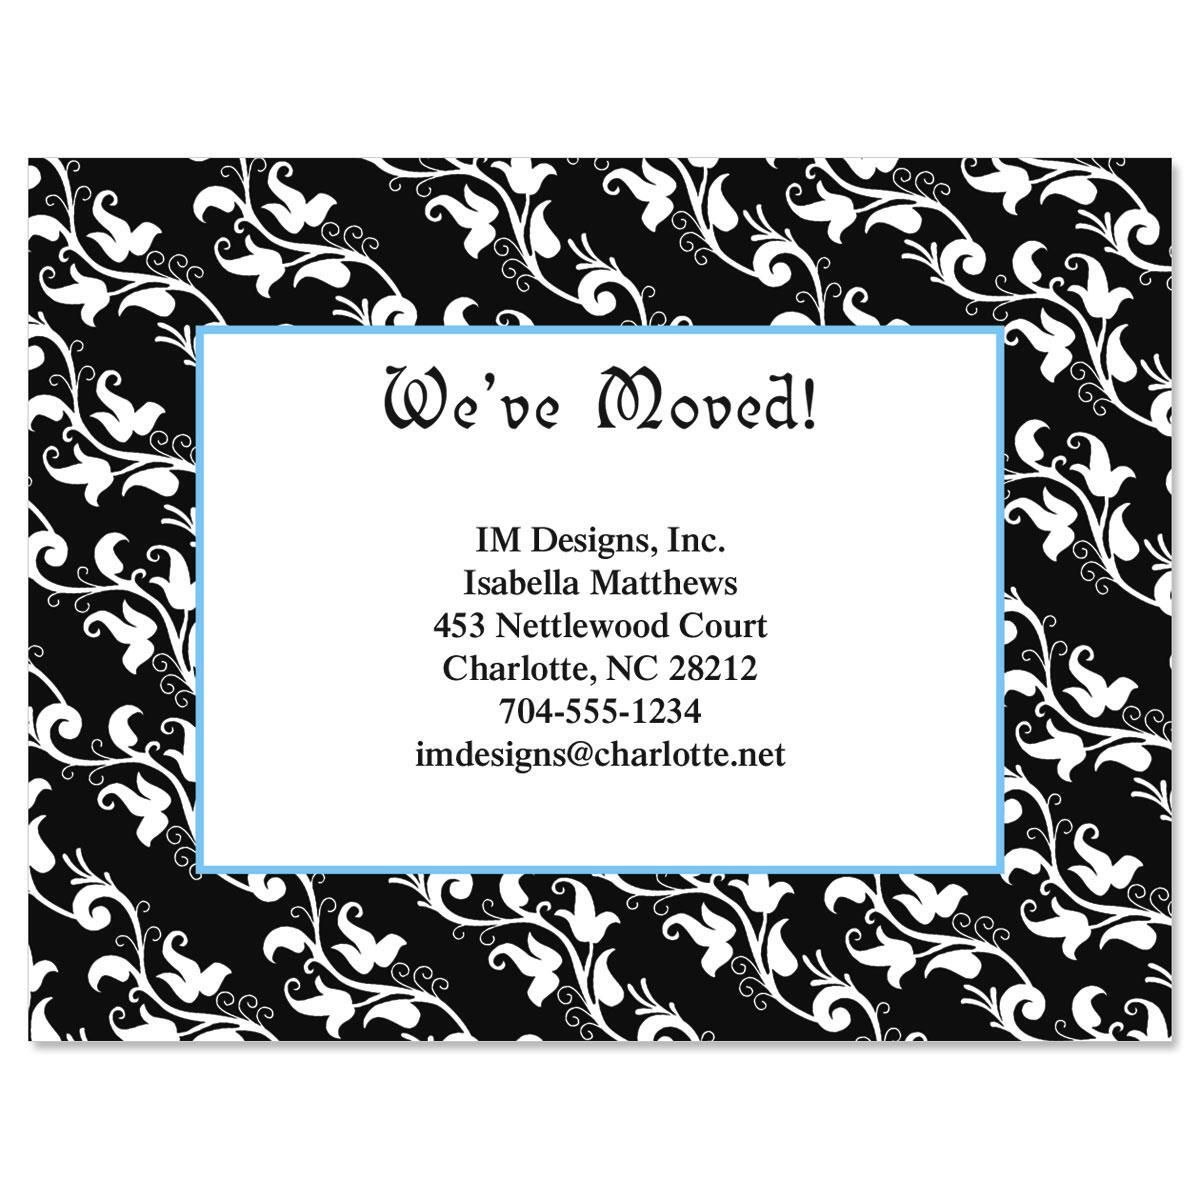 Black Elegance We've Moved Postcards  (3 Designs)